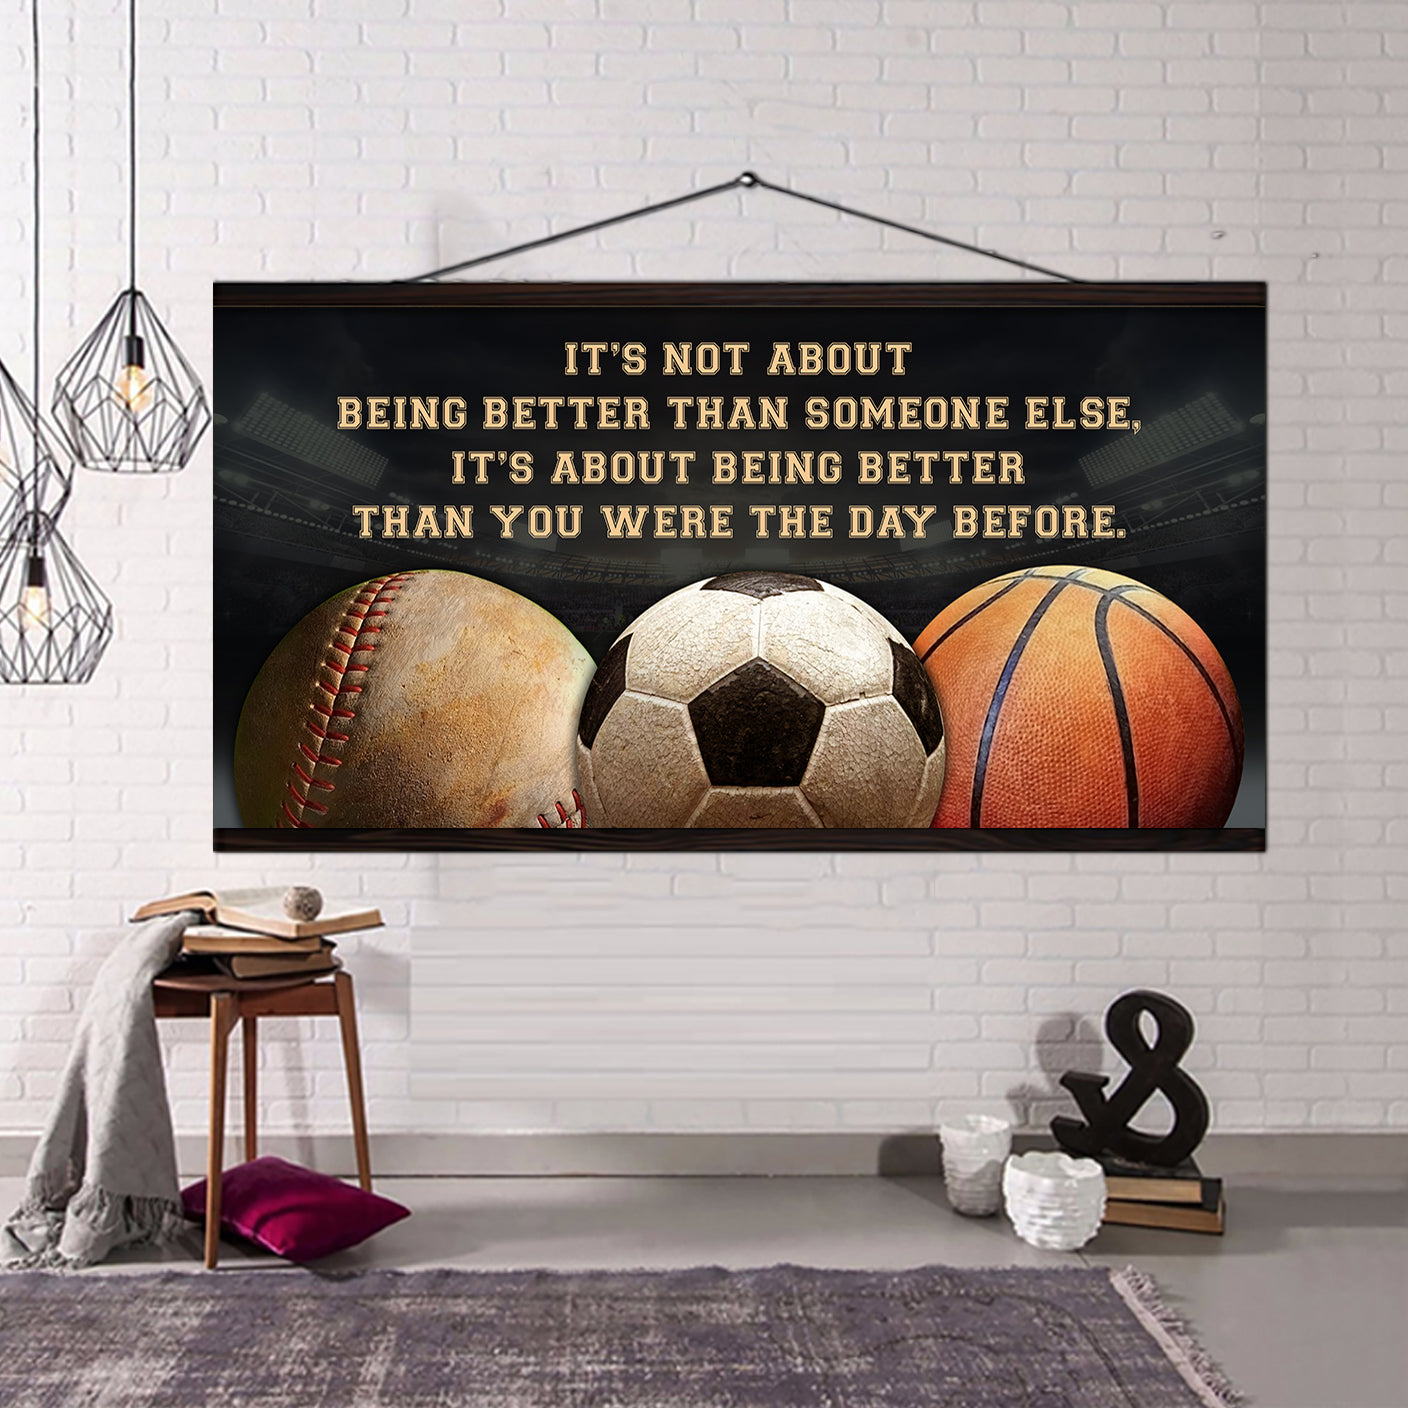 (QH665) Customizable basketball, baseball , soccer - Poster canvas - It's not about - FREE SHIPPING ON ORDERS OVER $75